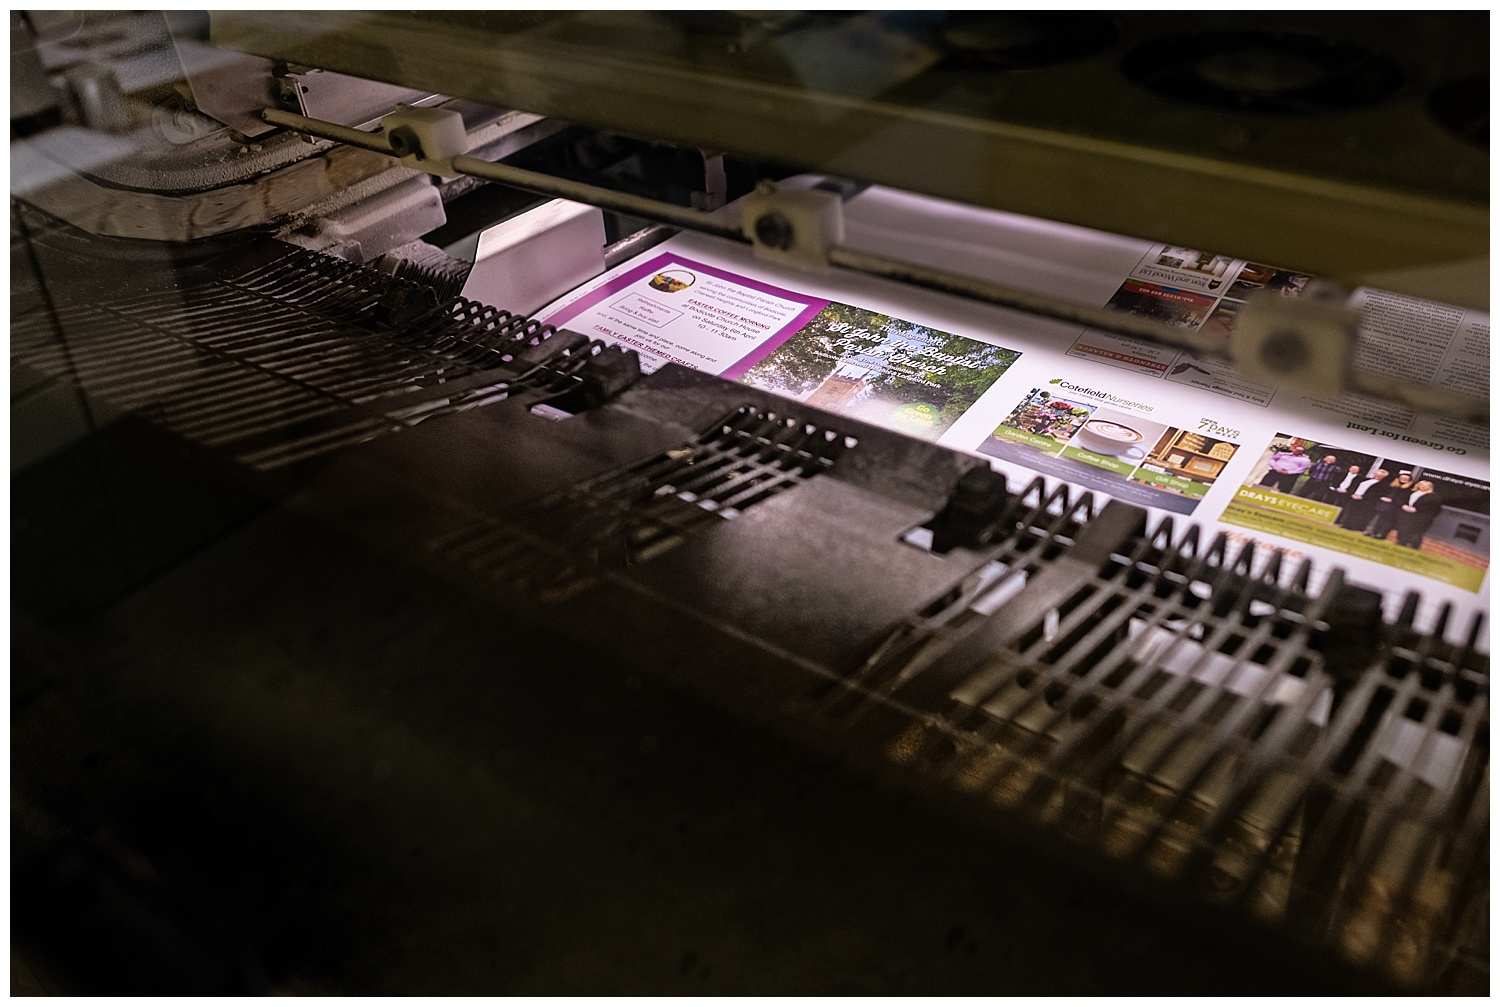 Printing press creating the front cover of a magazine